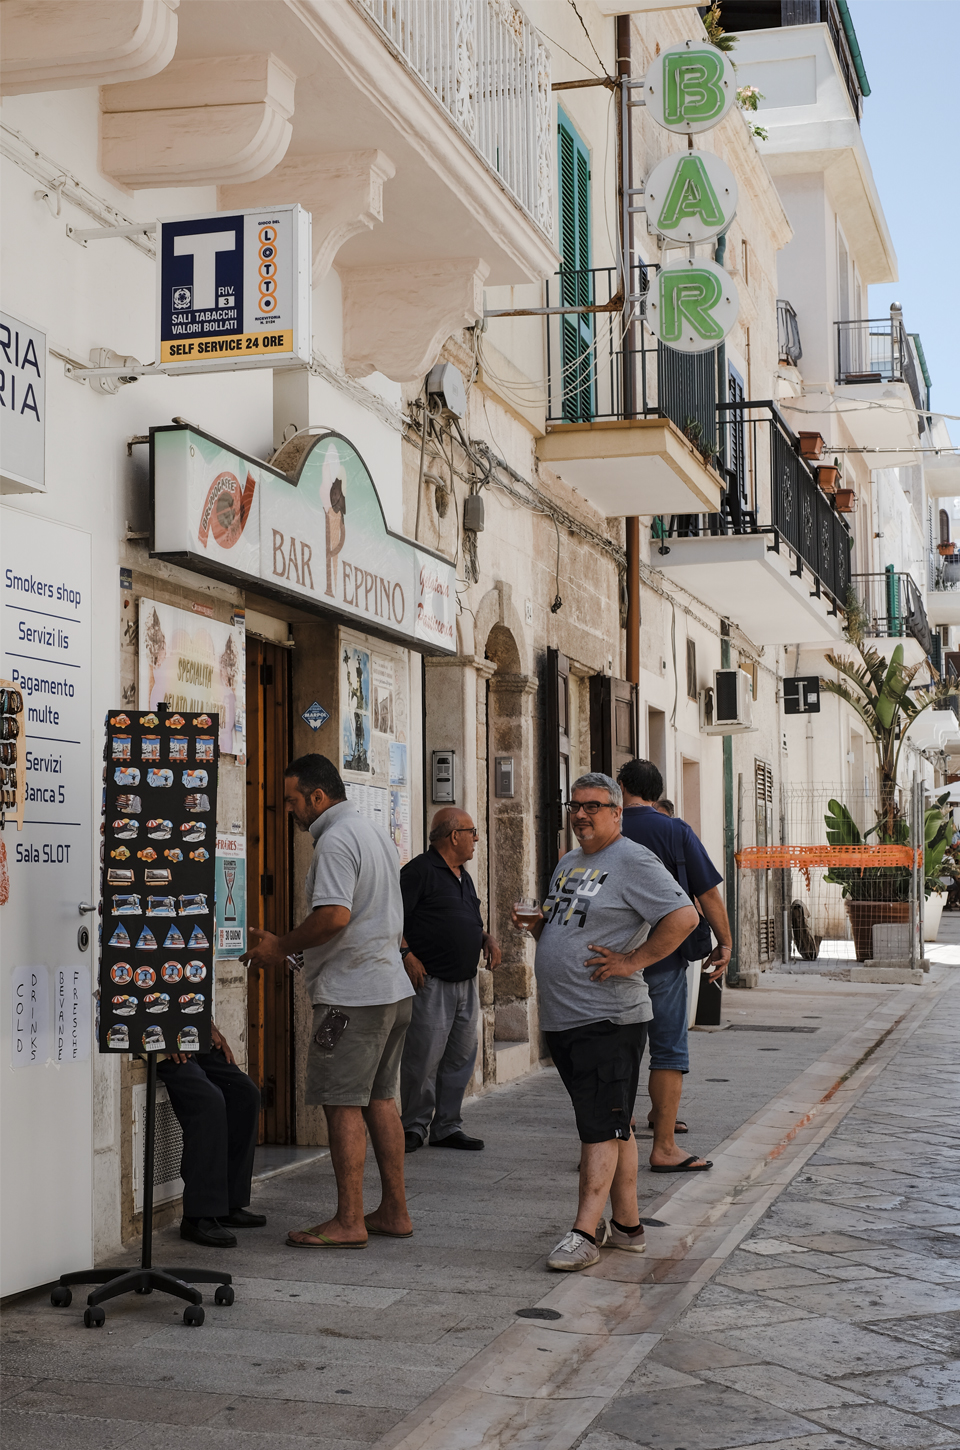 A glimpse of Puglia man standing and talking outside a bar